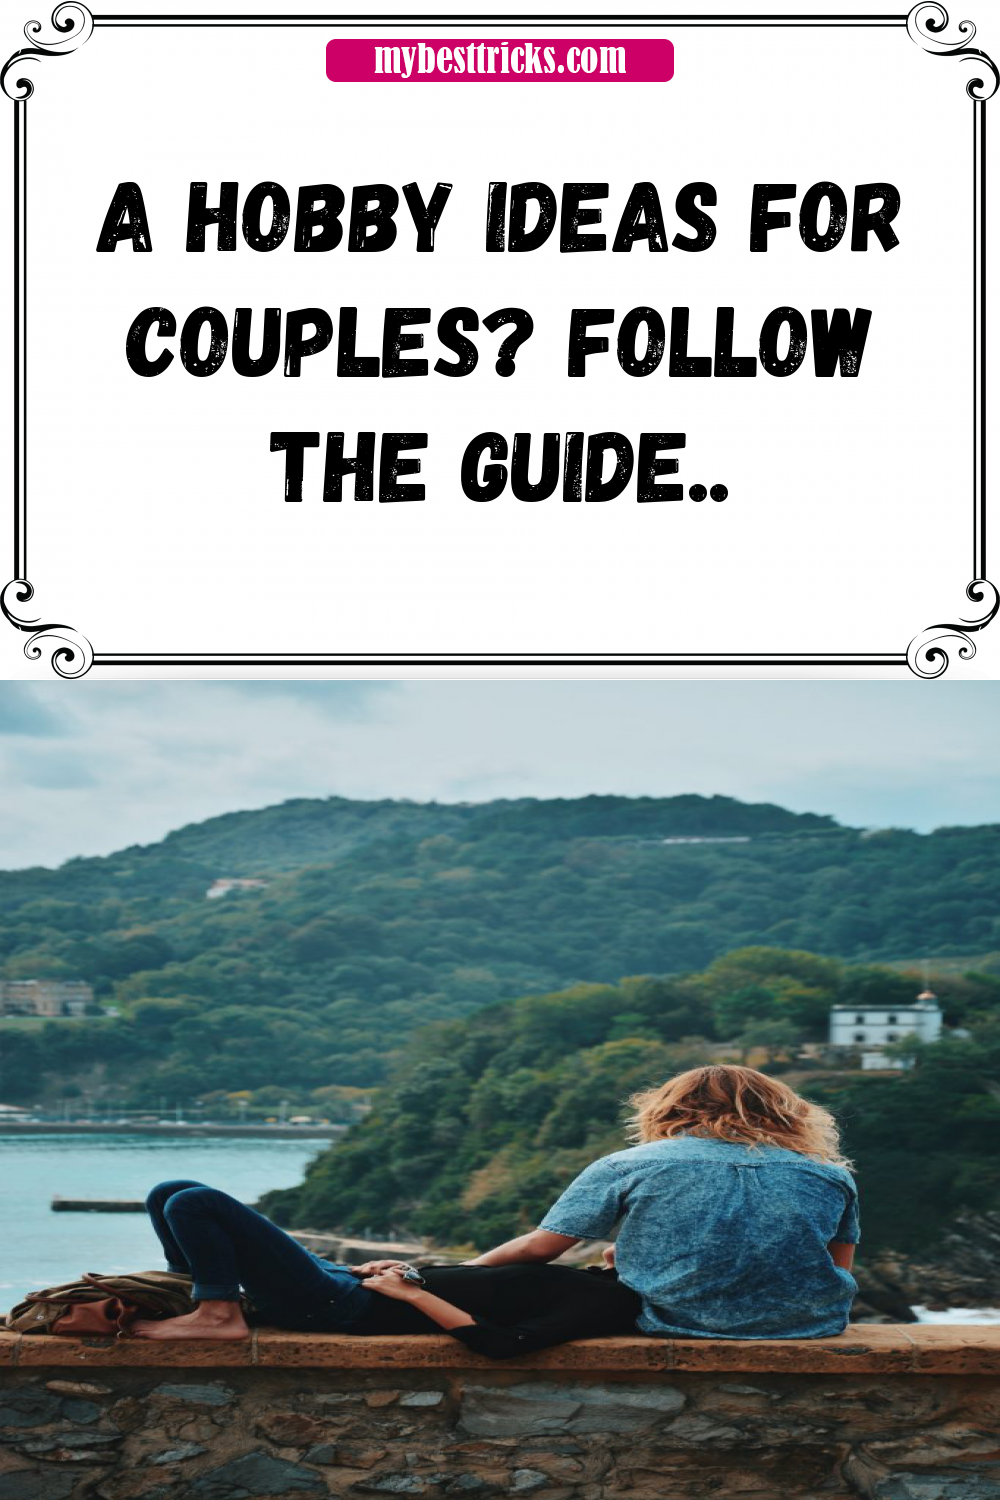 Find Ideas For Hobbies And Activities To Do As A Couple Having Fun Good Time With Your Partner Is Essential Have Learn New Language Couples